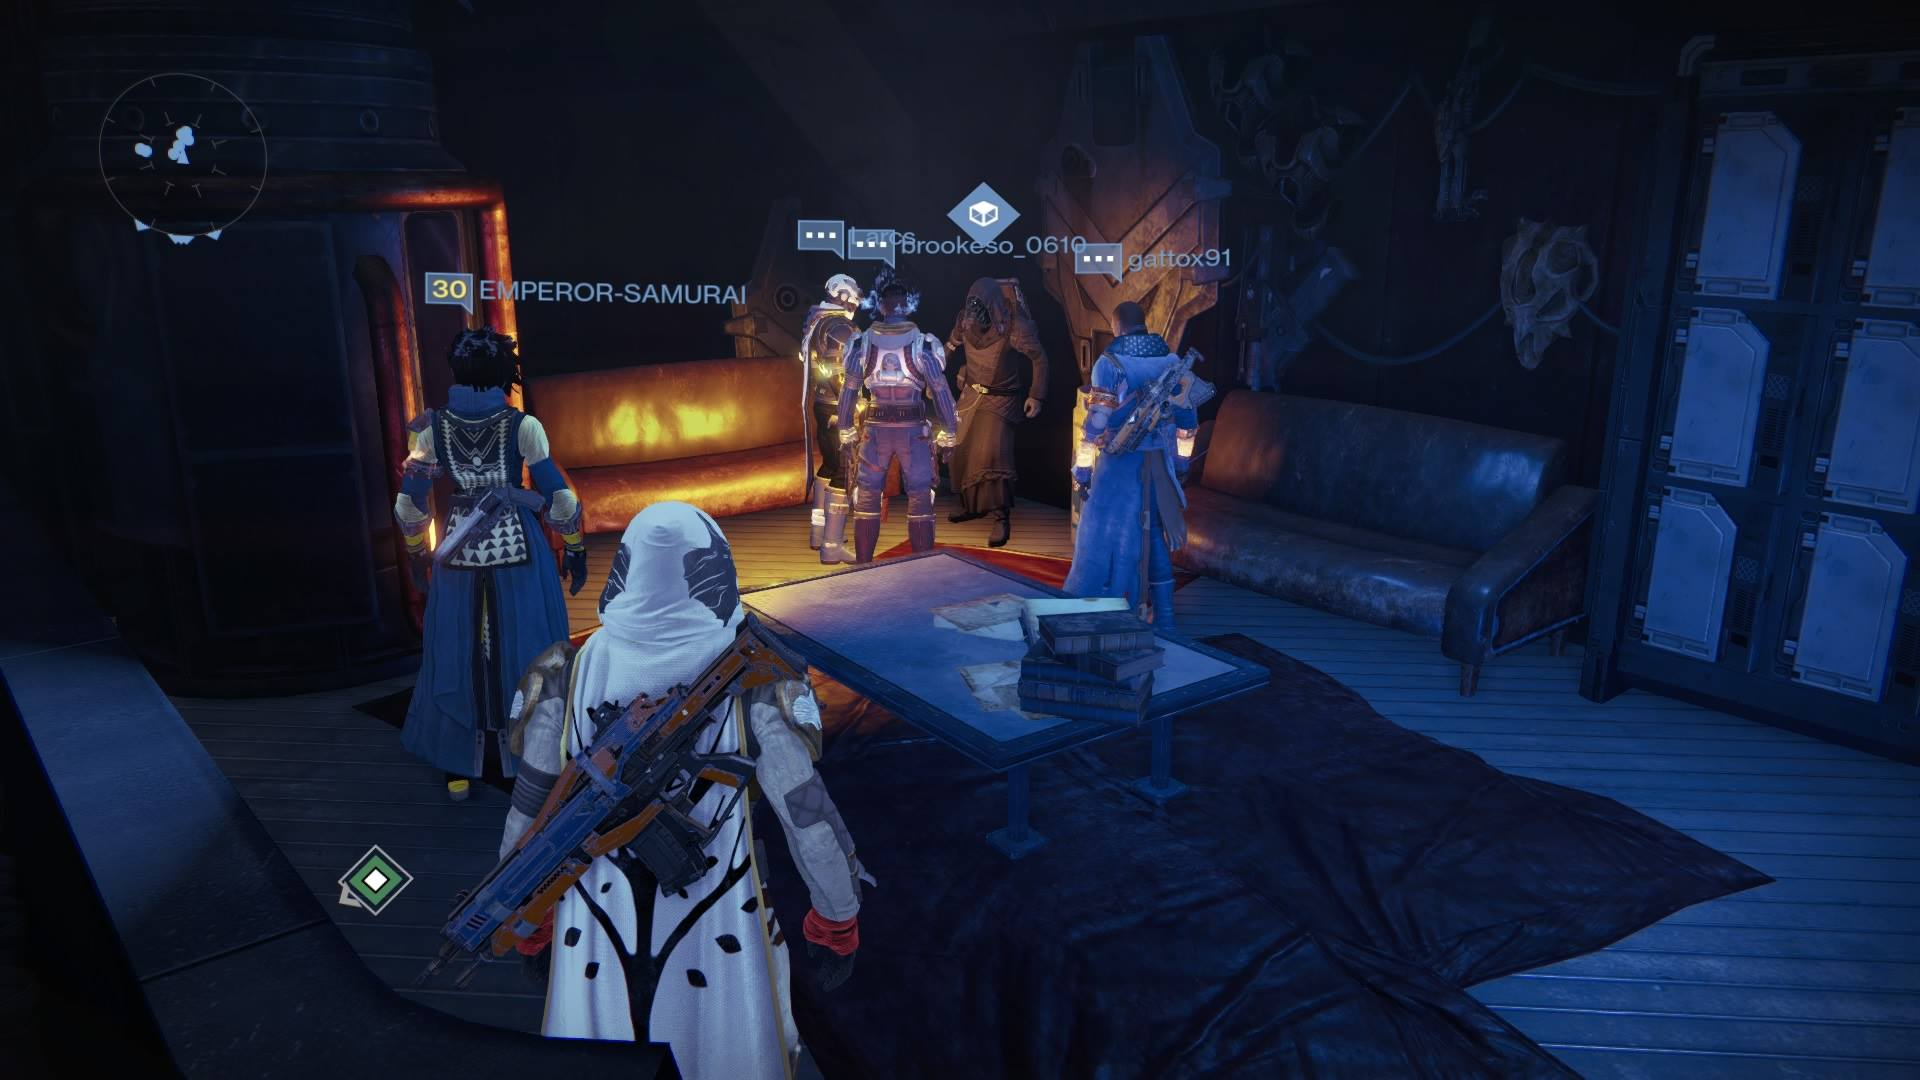 Xur – Agent of the Nine can be found in the Tower Hangar Lounge